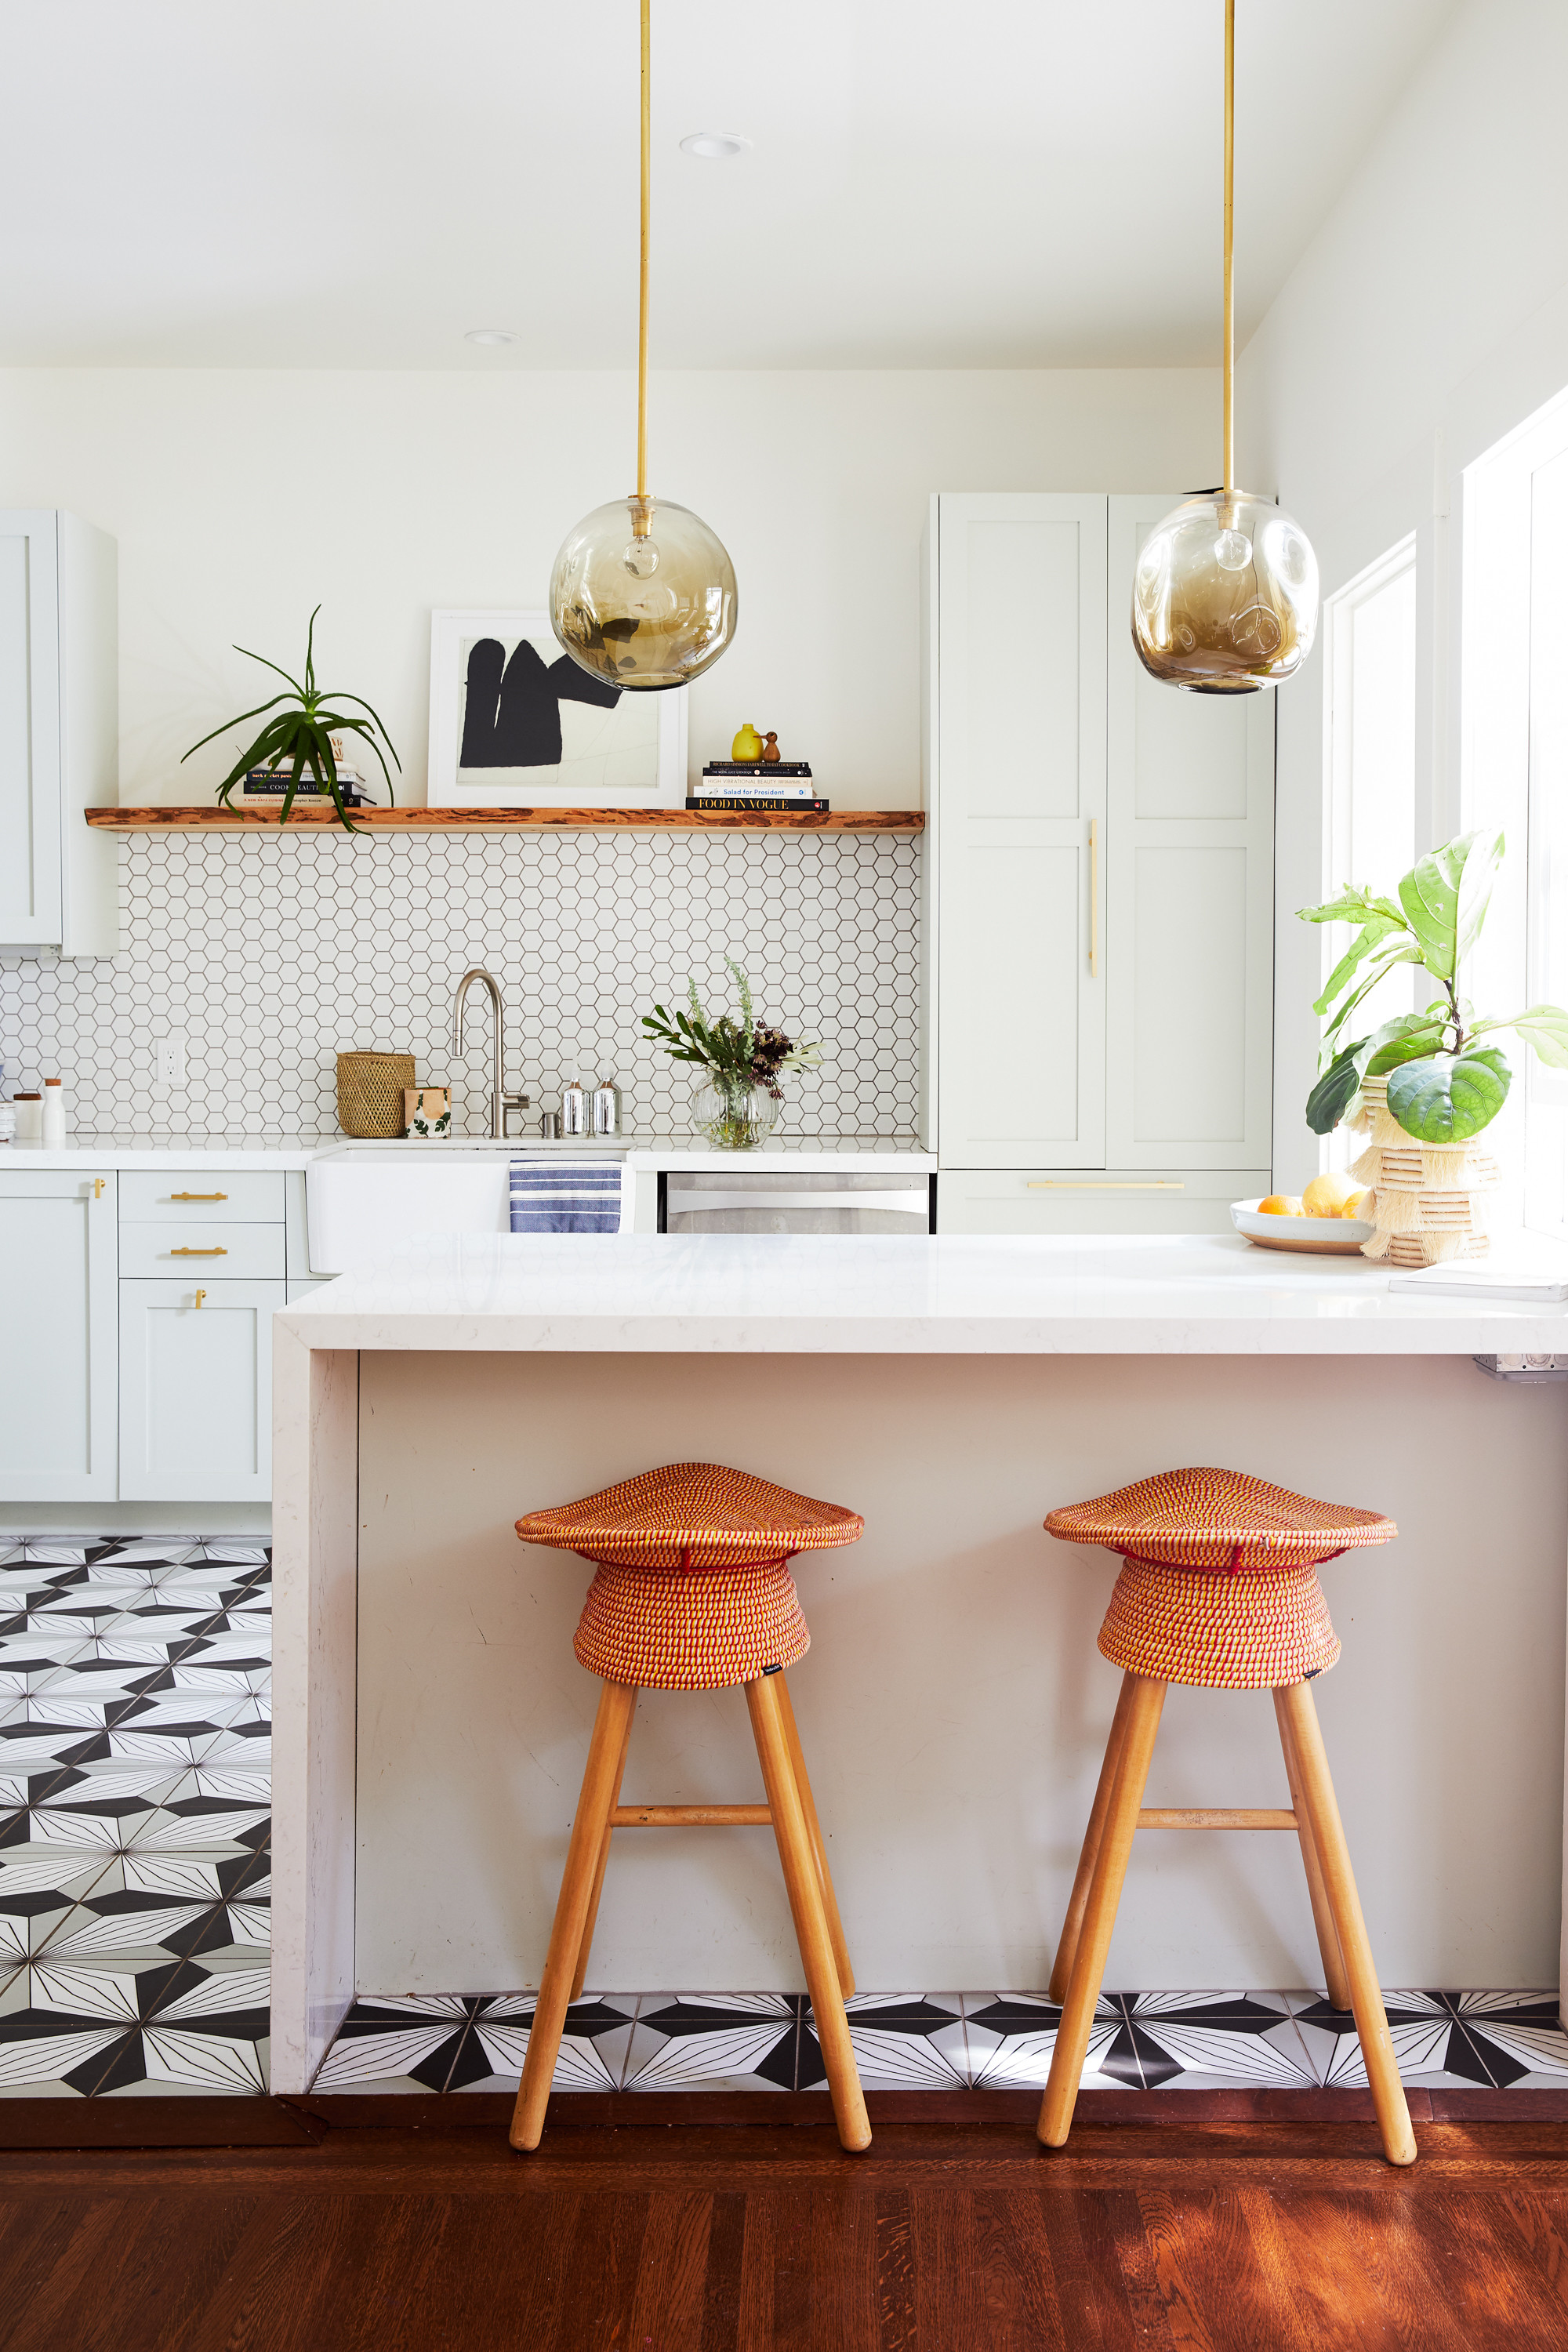 3 Things I Learned From My Kitchen Reno